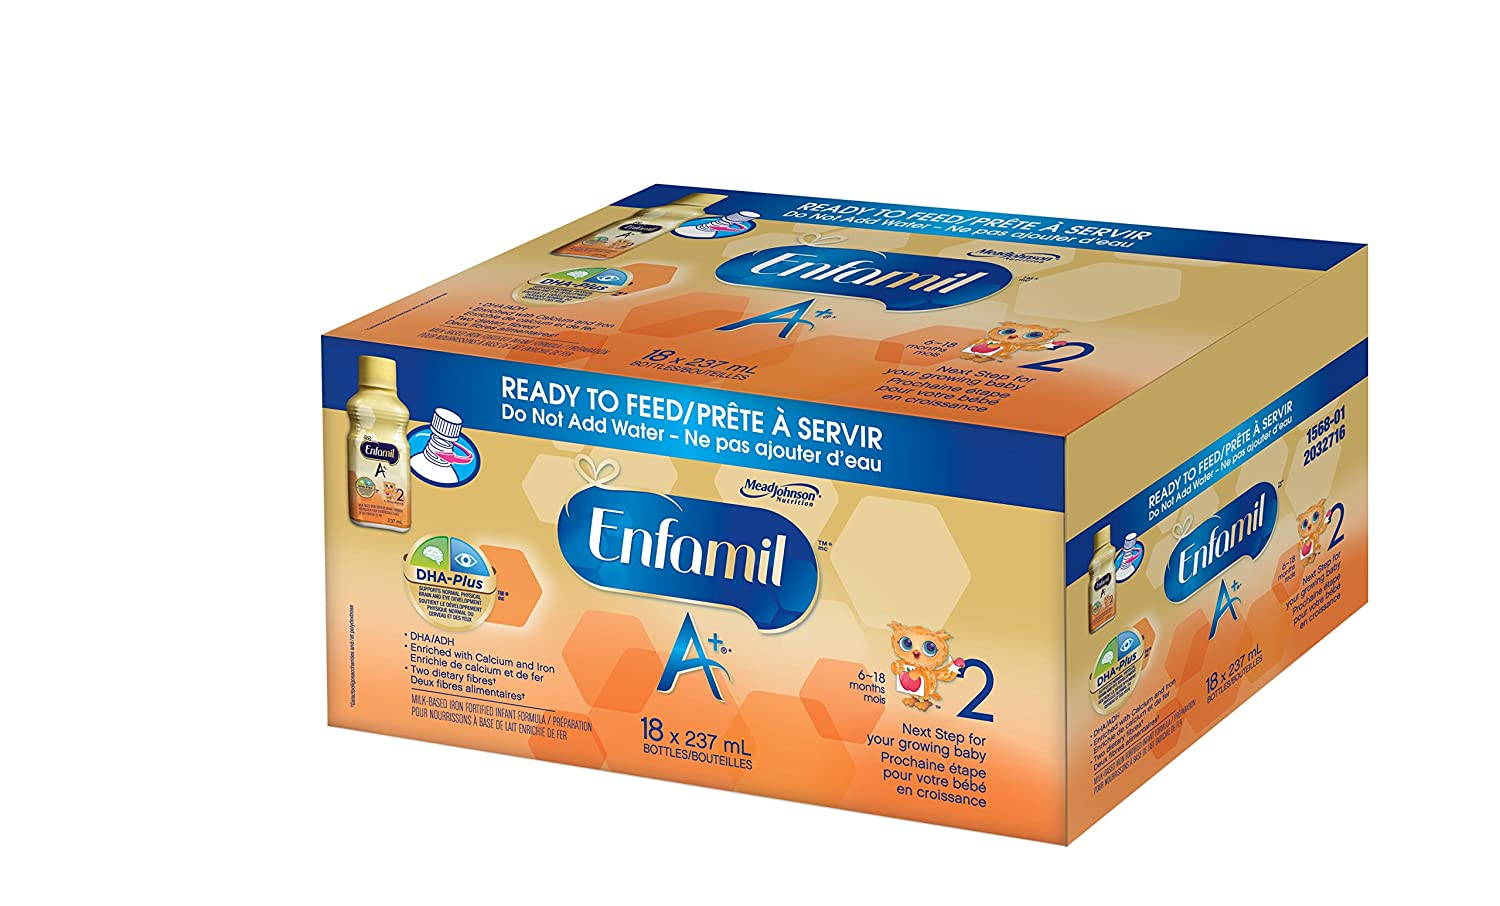 Enfamil A+ 2 Infant Formula, Ready to Feed Bottles, 237mL, 18 pack Mead Johnson & Company CA